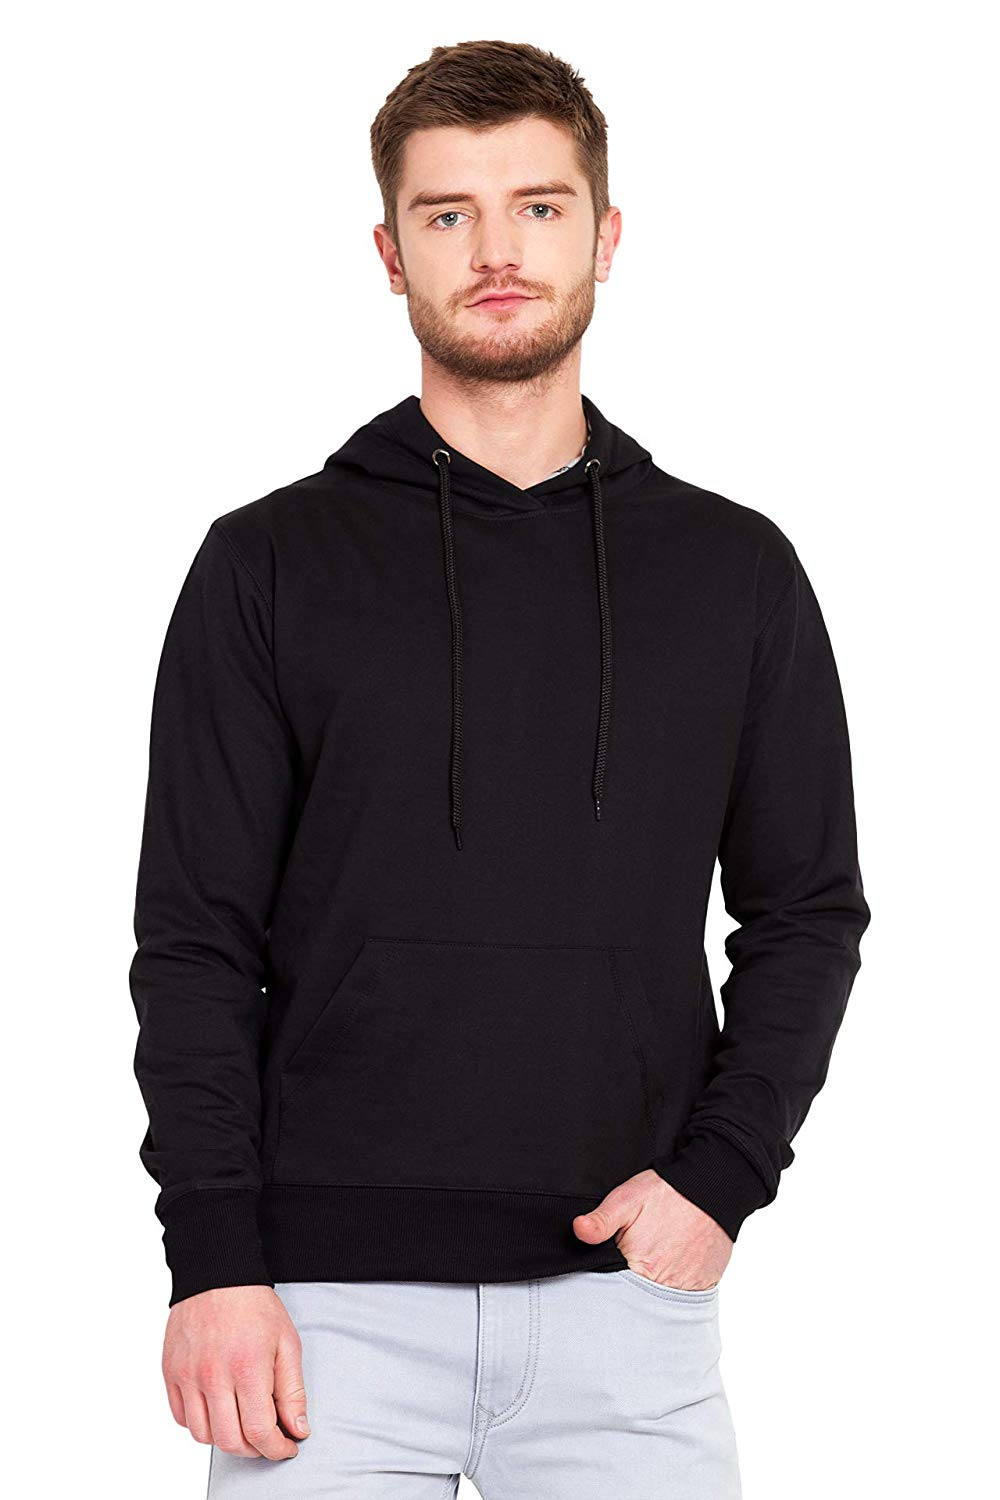 100 % Cotton Hoodies For Men In Black Color